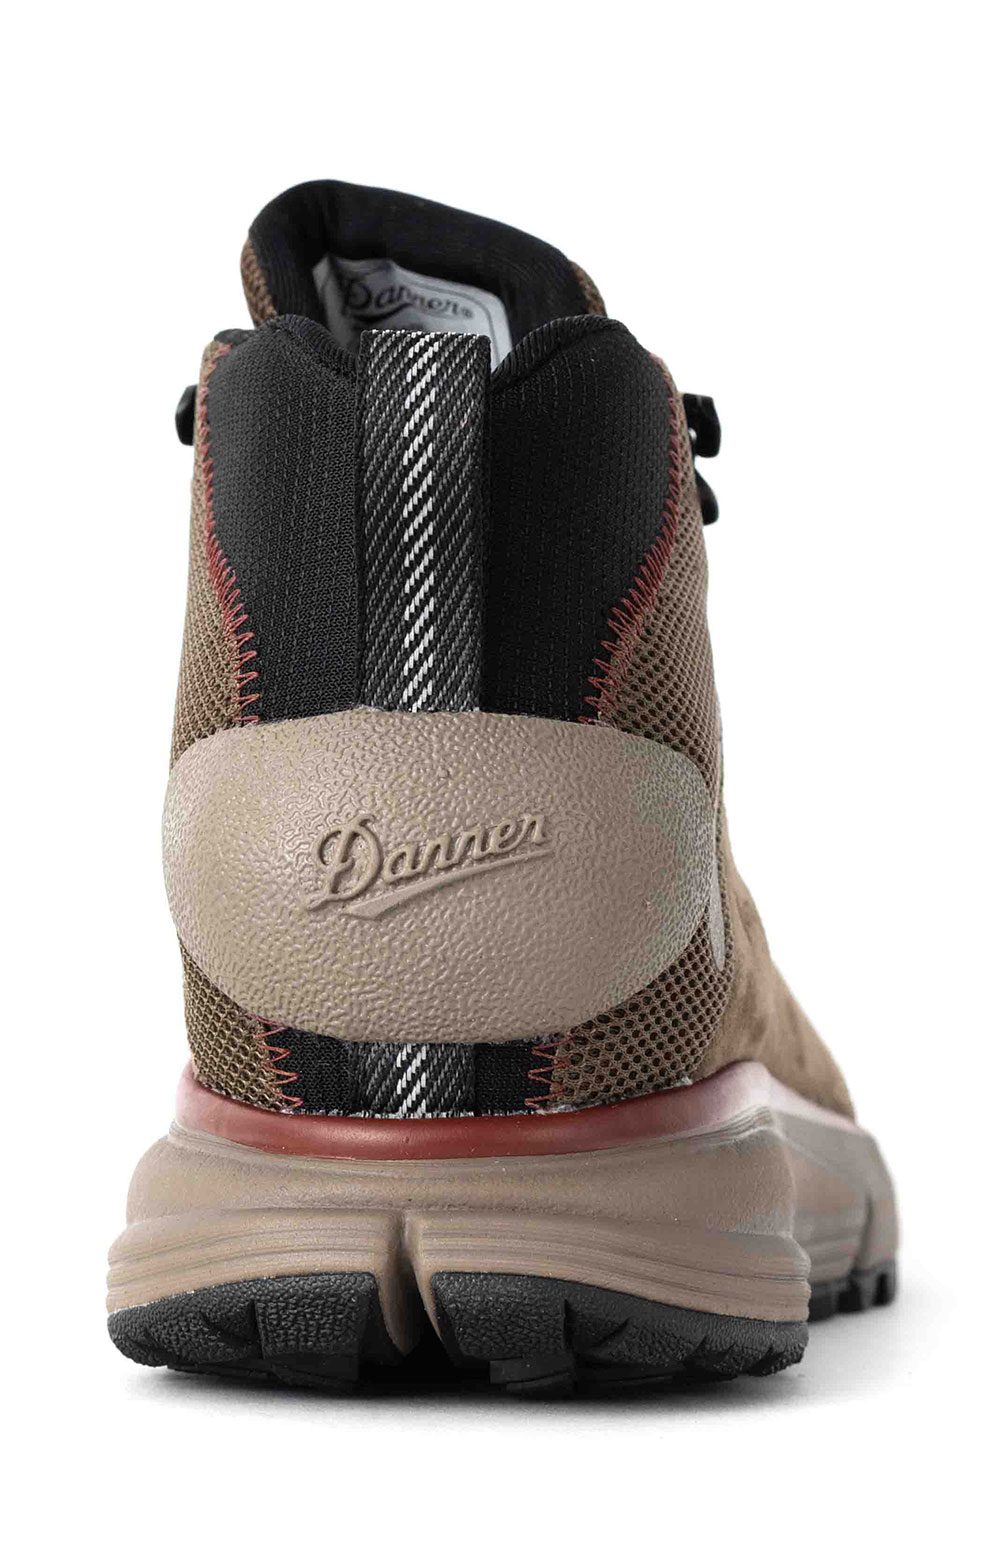 (61240) Trail 2650 GTX Mid Boots - Dusty Olive  5